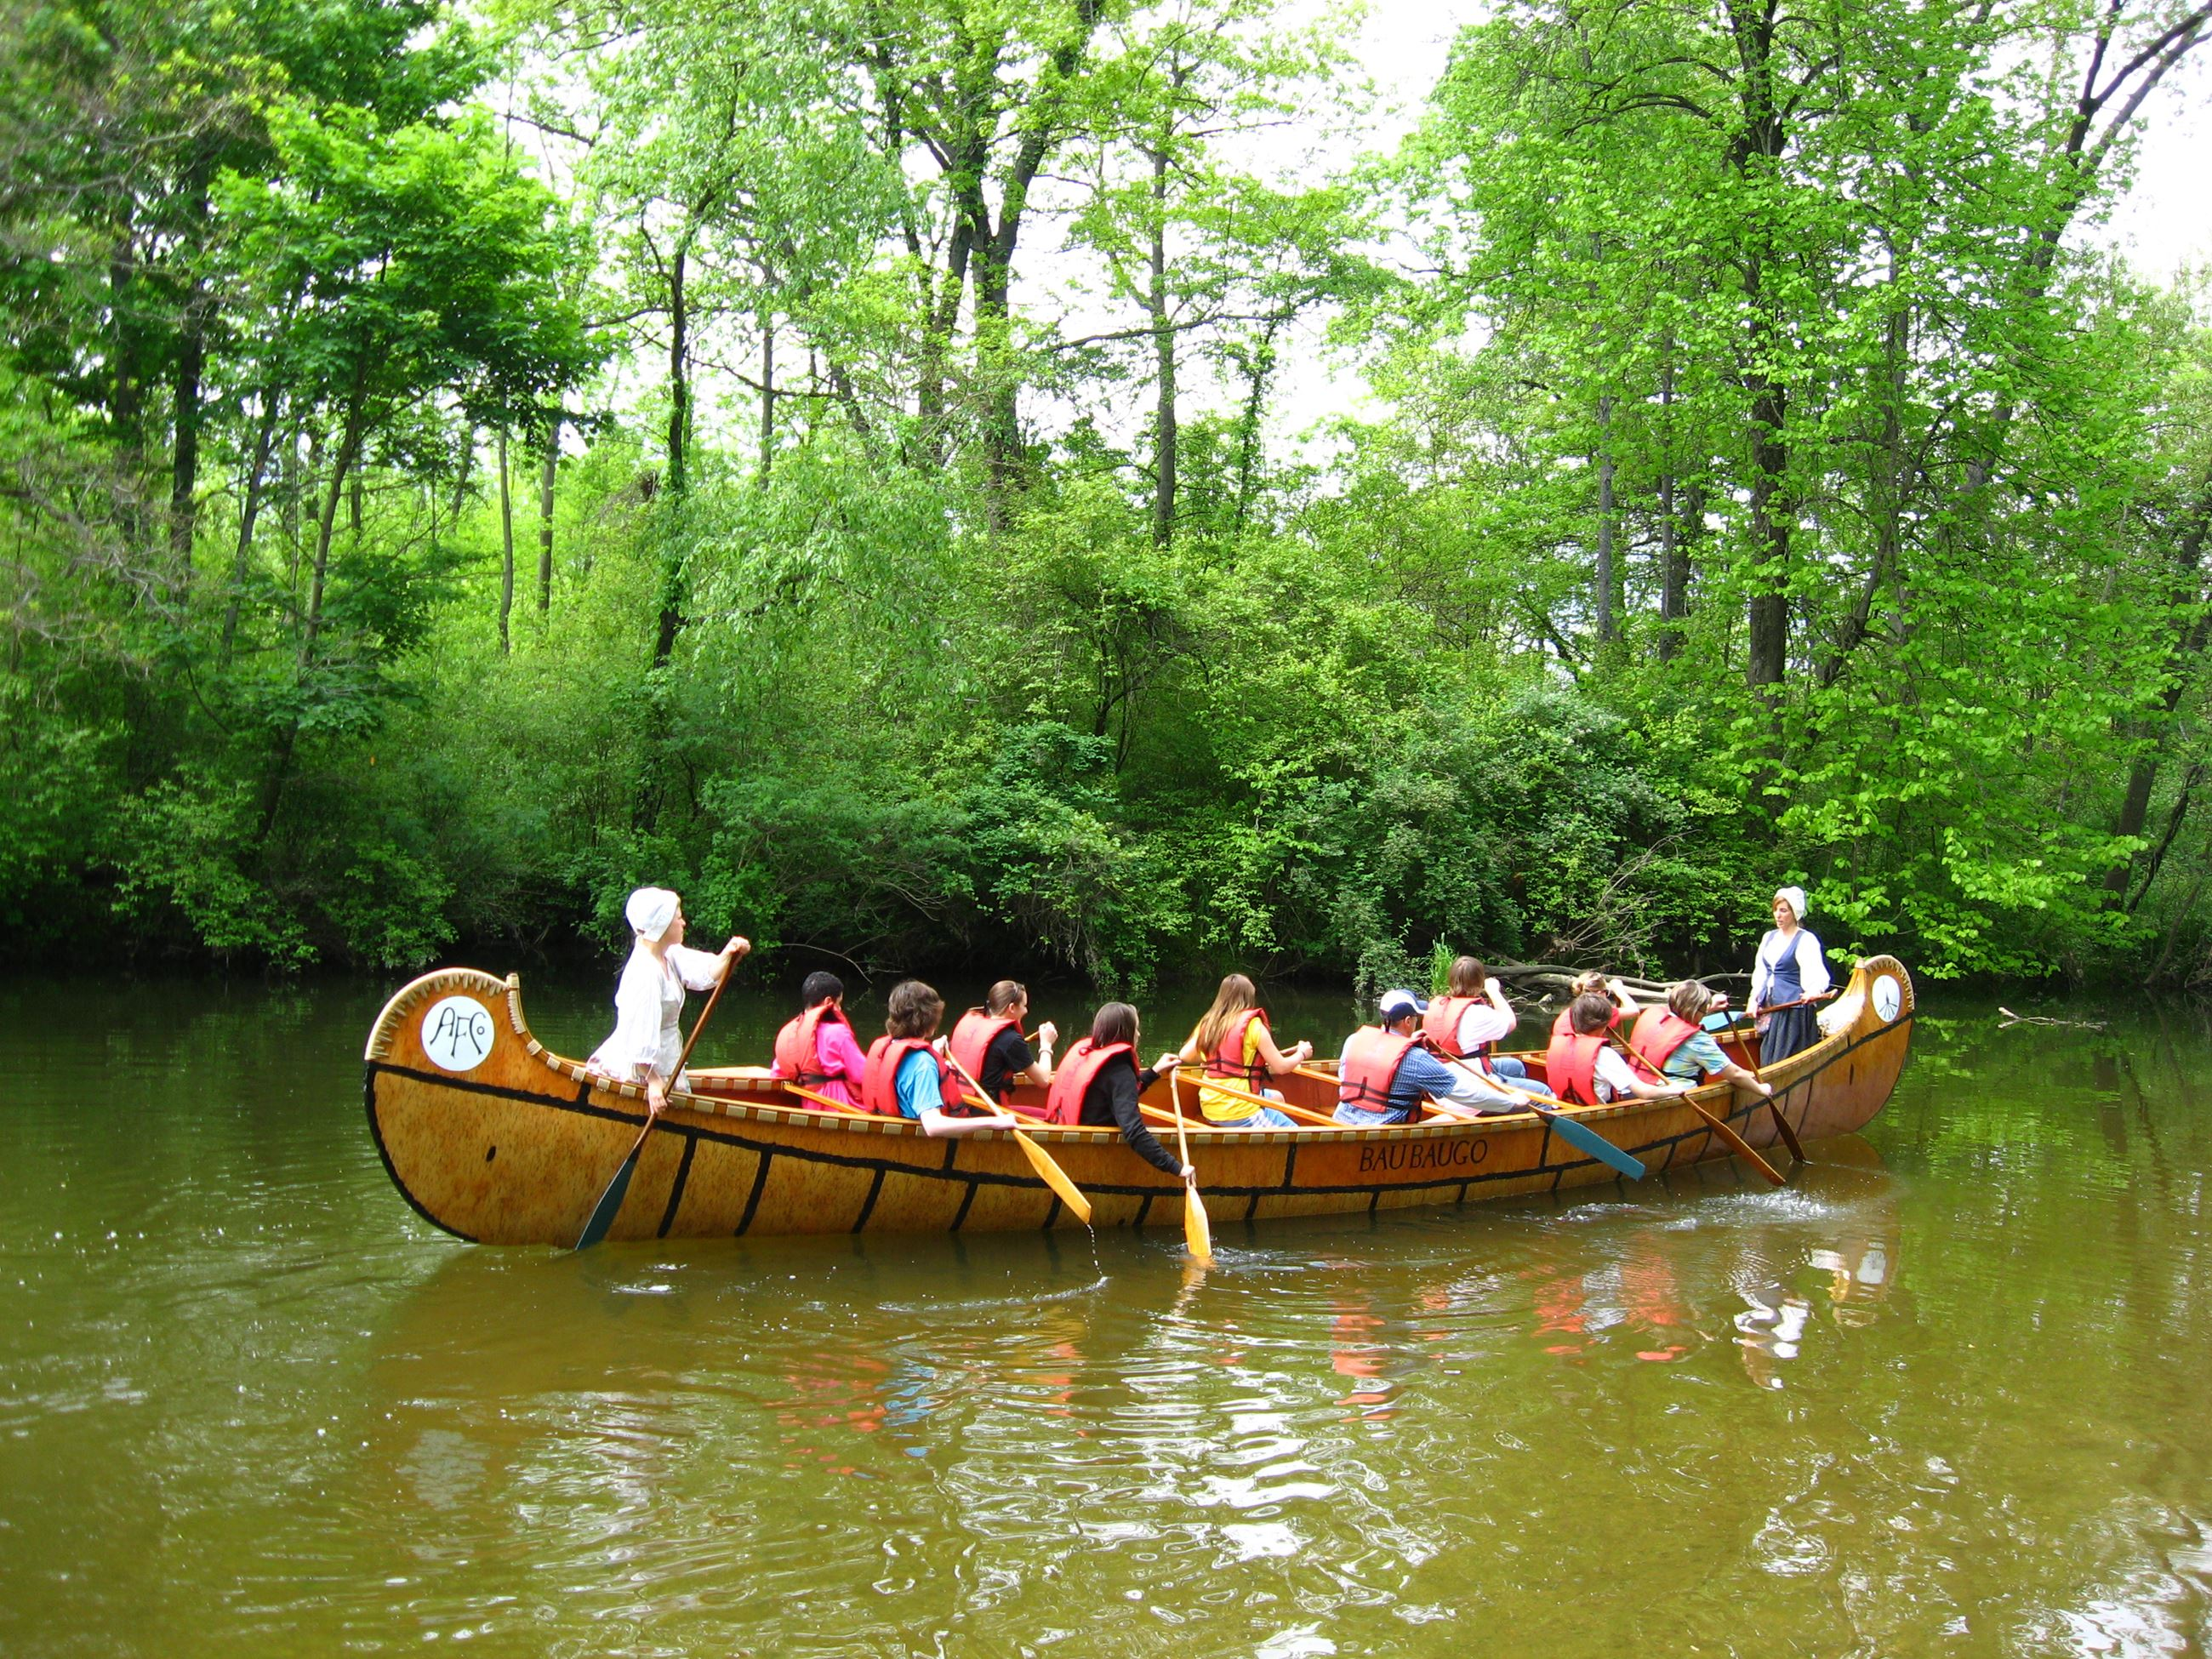 voyageur canoe on the creek